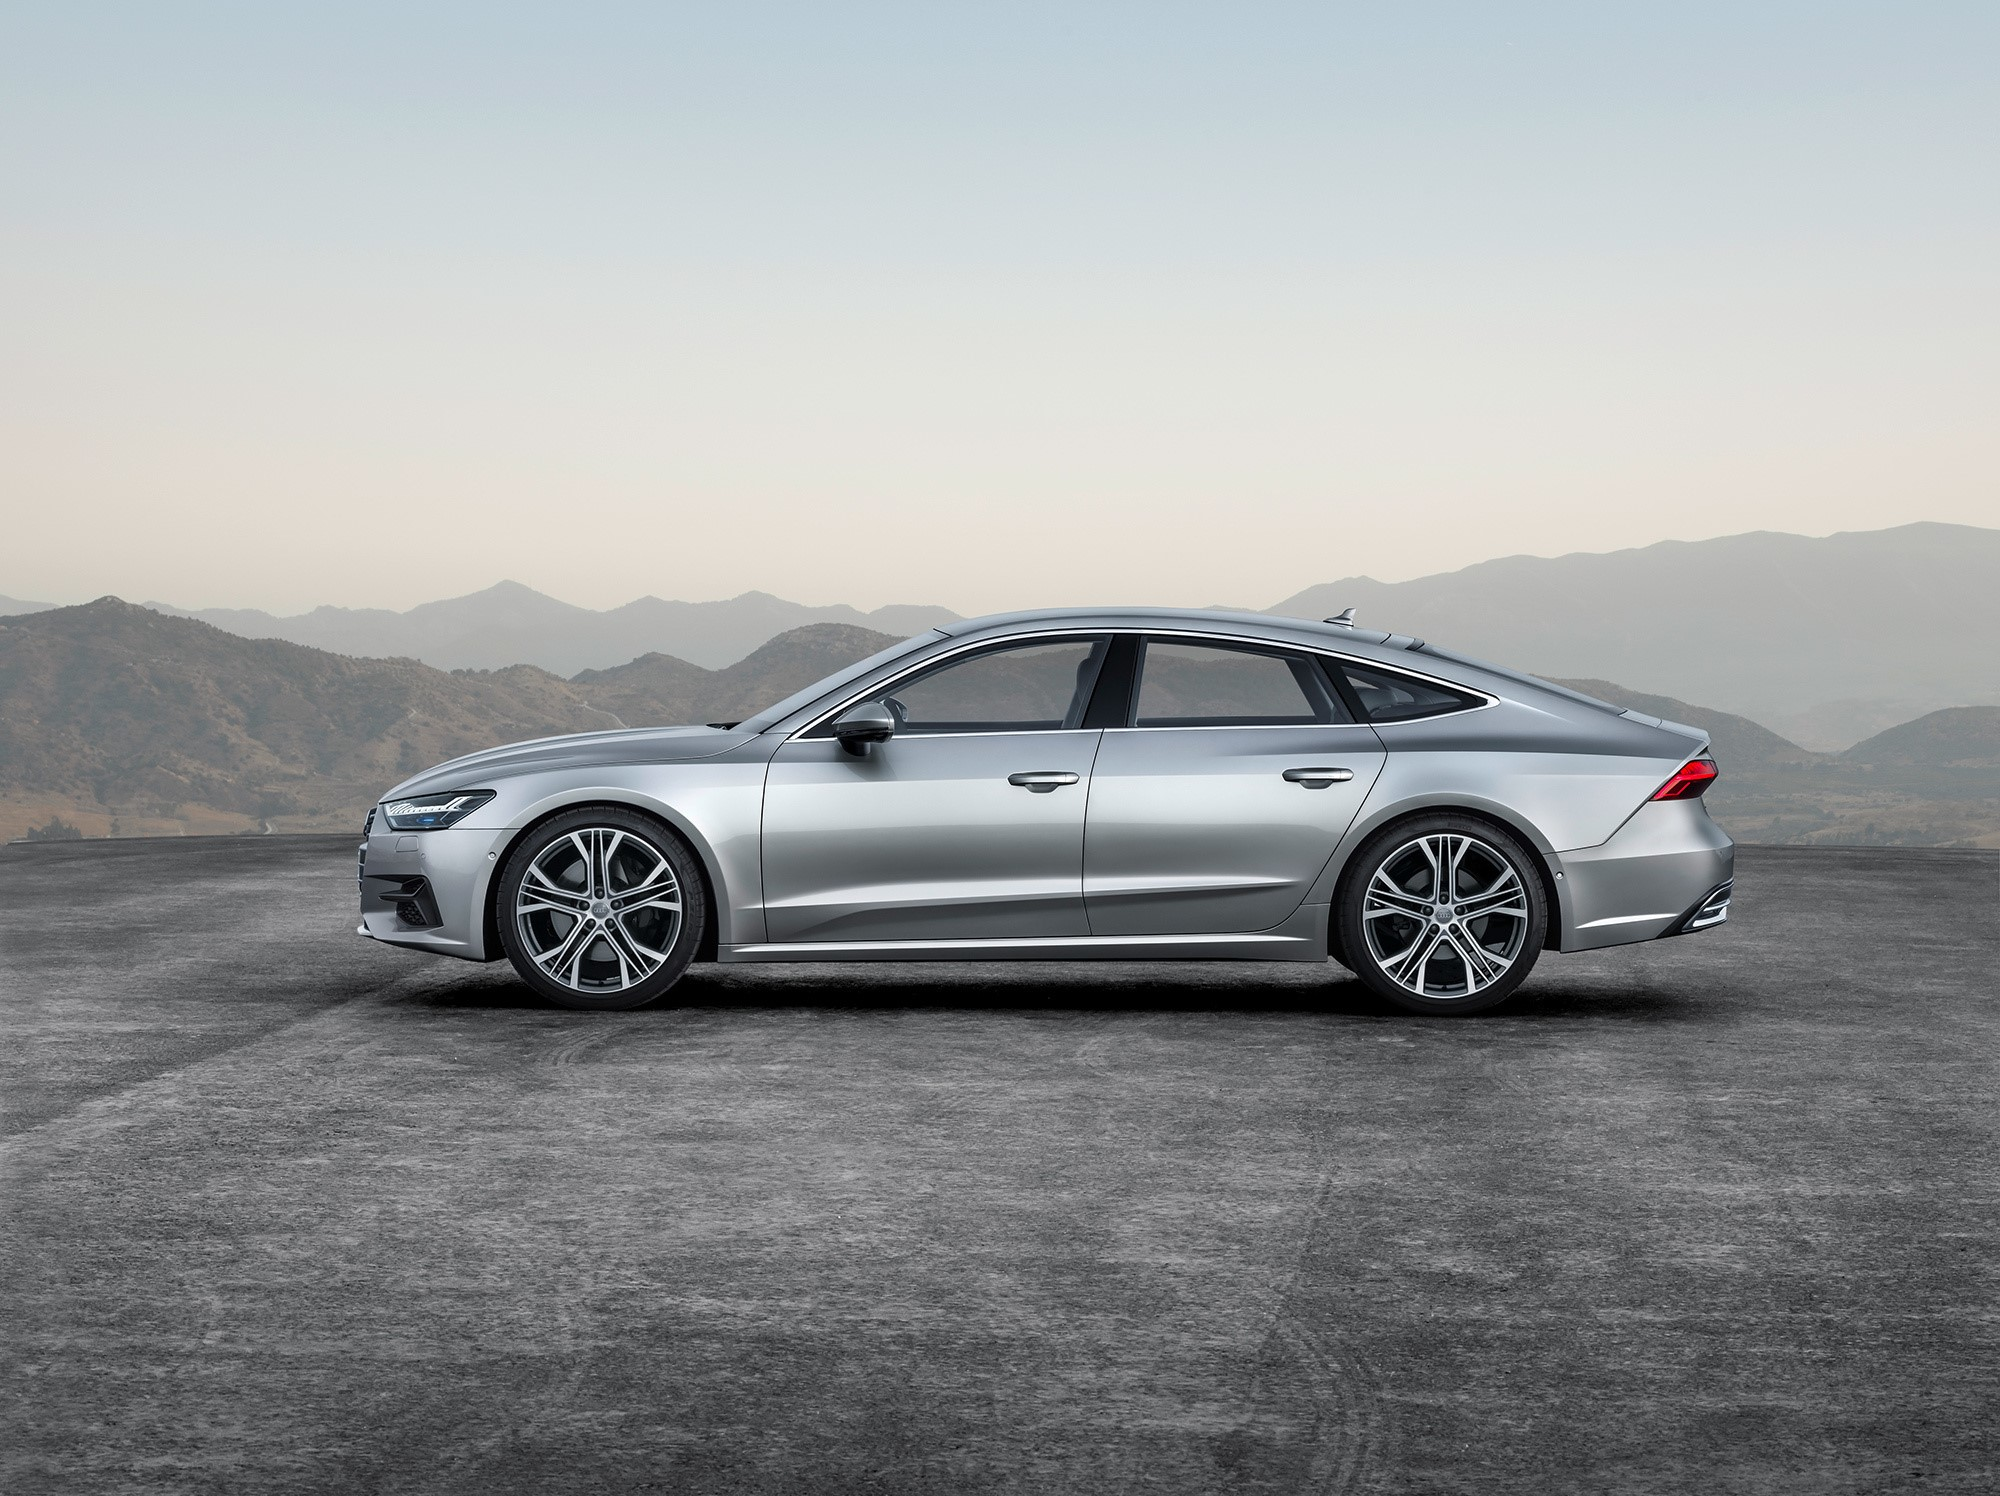 Audi A7 Wallpapers for Desktop